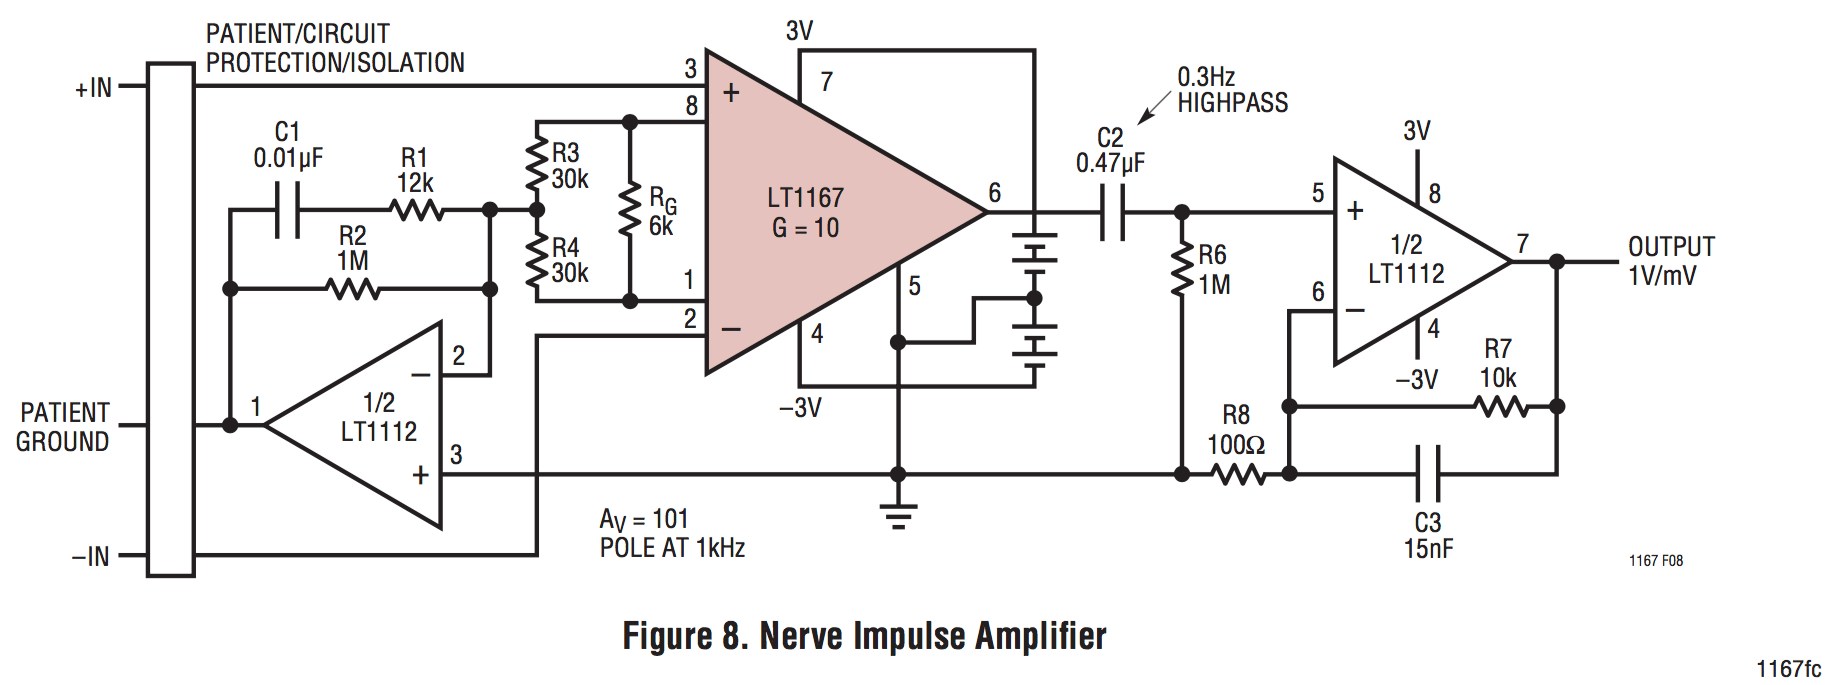 hight resolution of we ll assemble one of these nerve impulse amplifier circuits for each muscle we d like to record from which in our case is two you only need to assemble